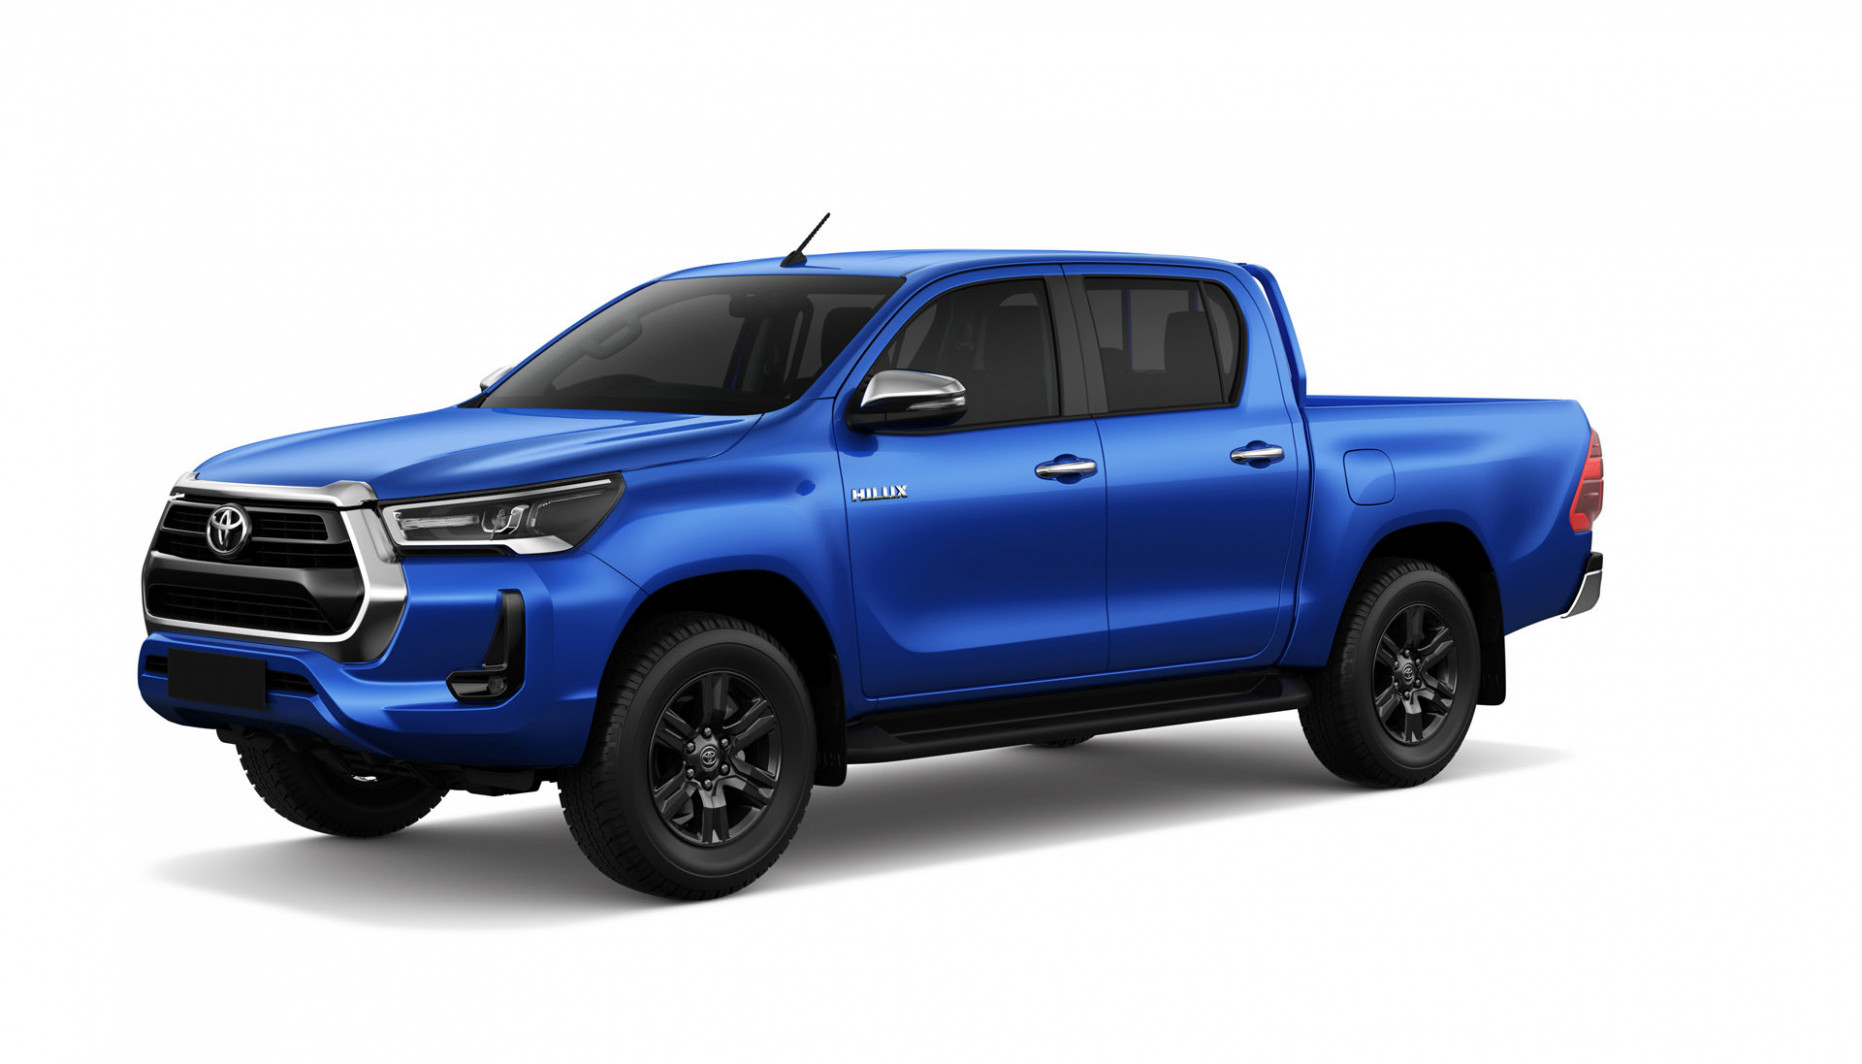 Redesign and Concept 2022 Toyota Hilux